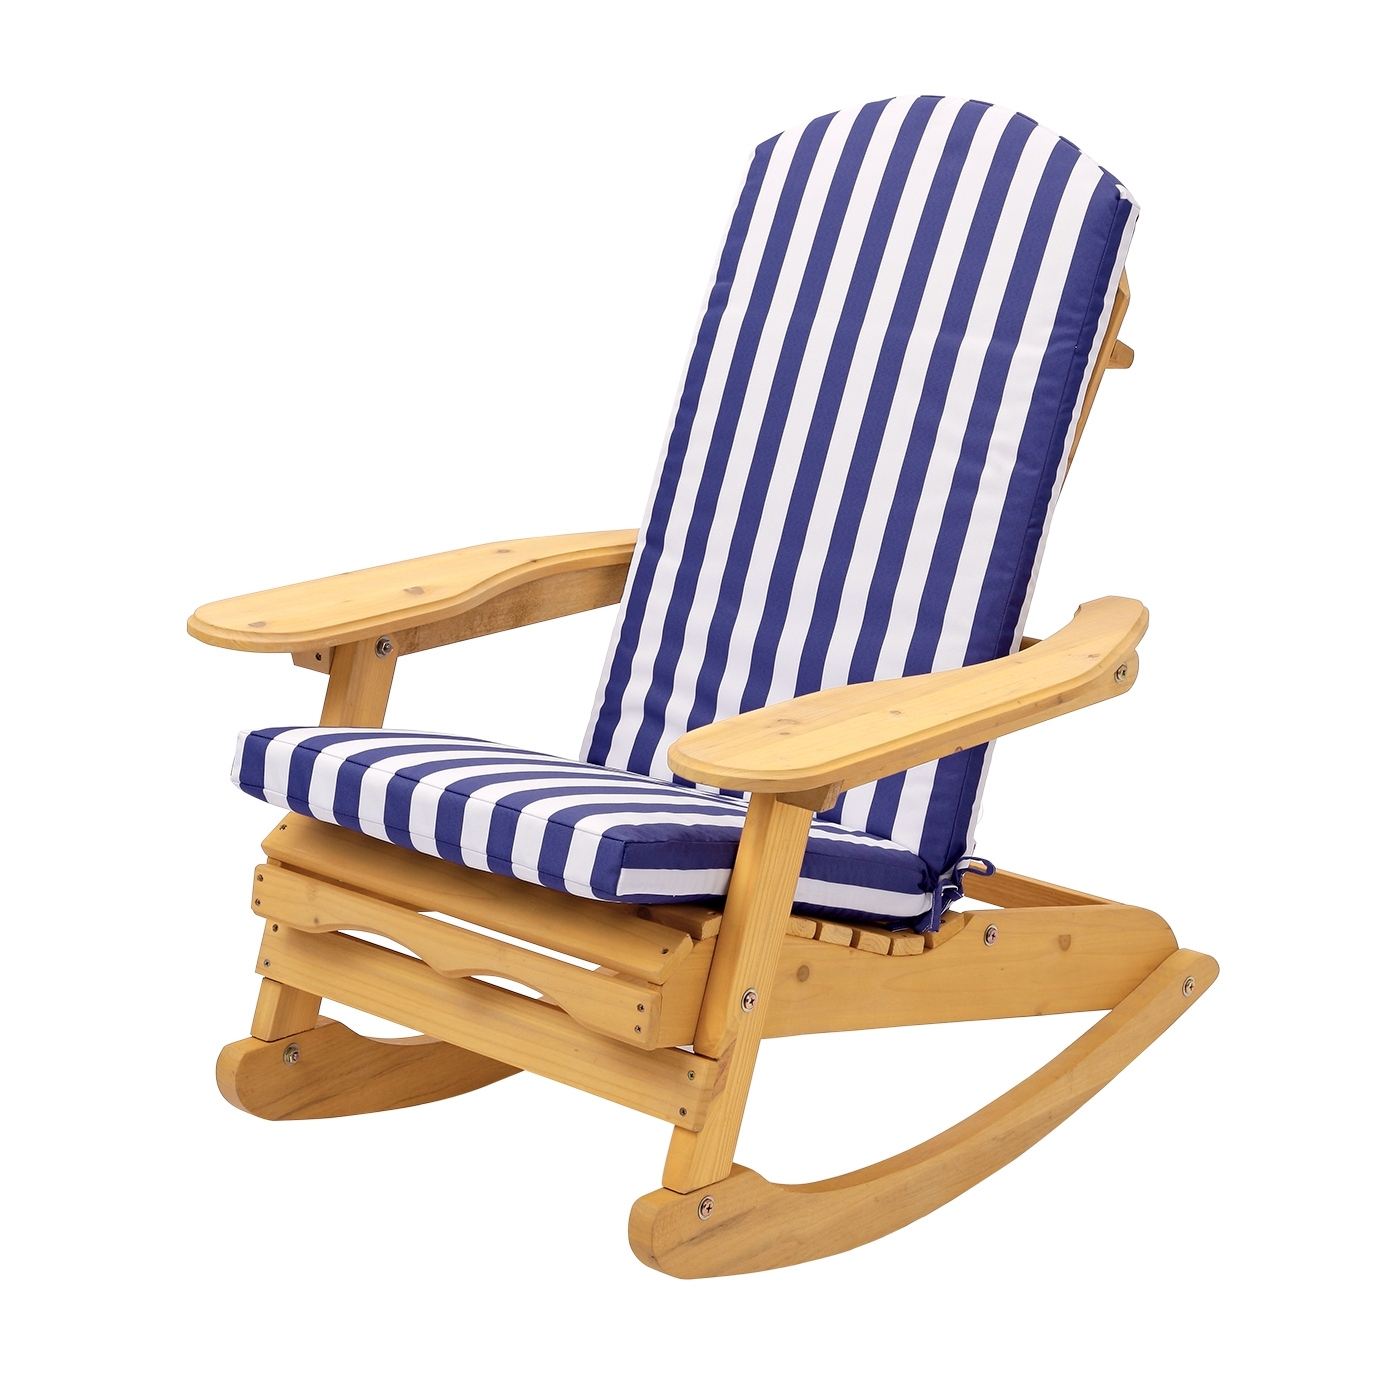 Rocking Chairs For Garden Pertaining To Newest Garden Patio Rocking Chair With Blue & White Striped Cushion (View 14 of 20)